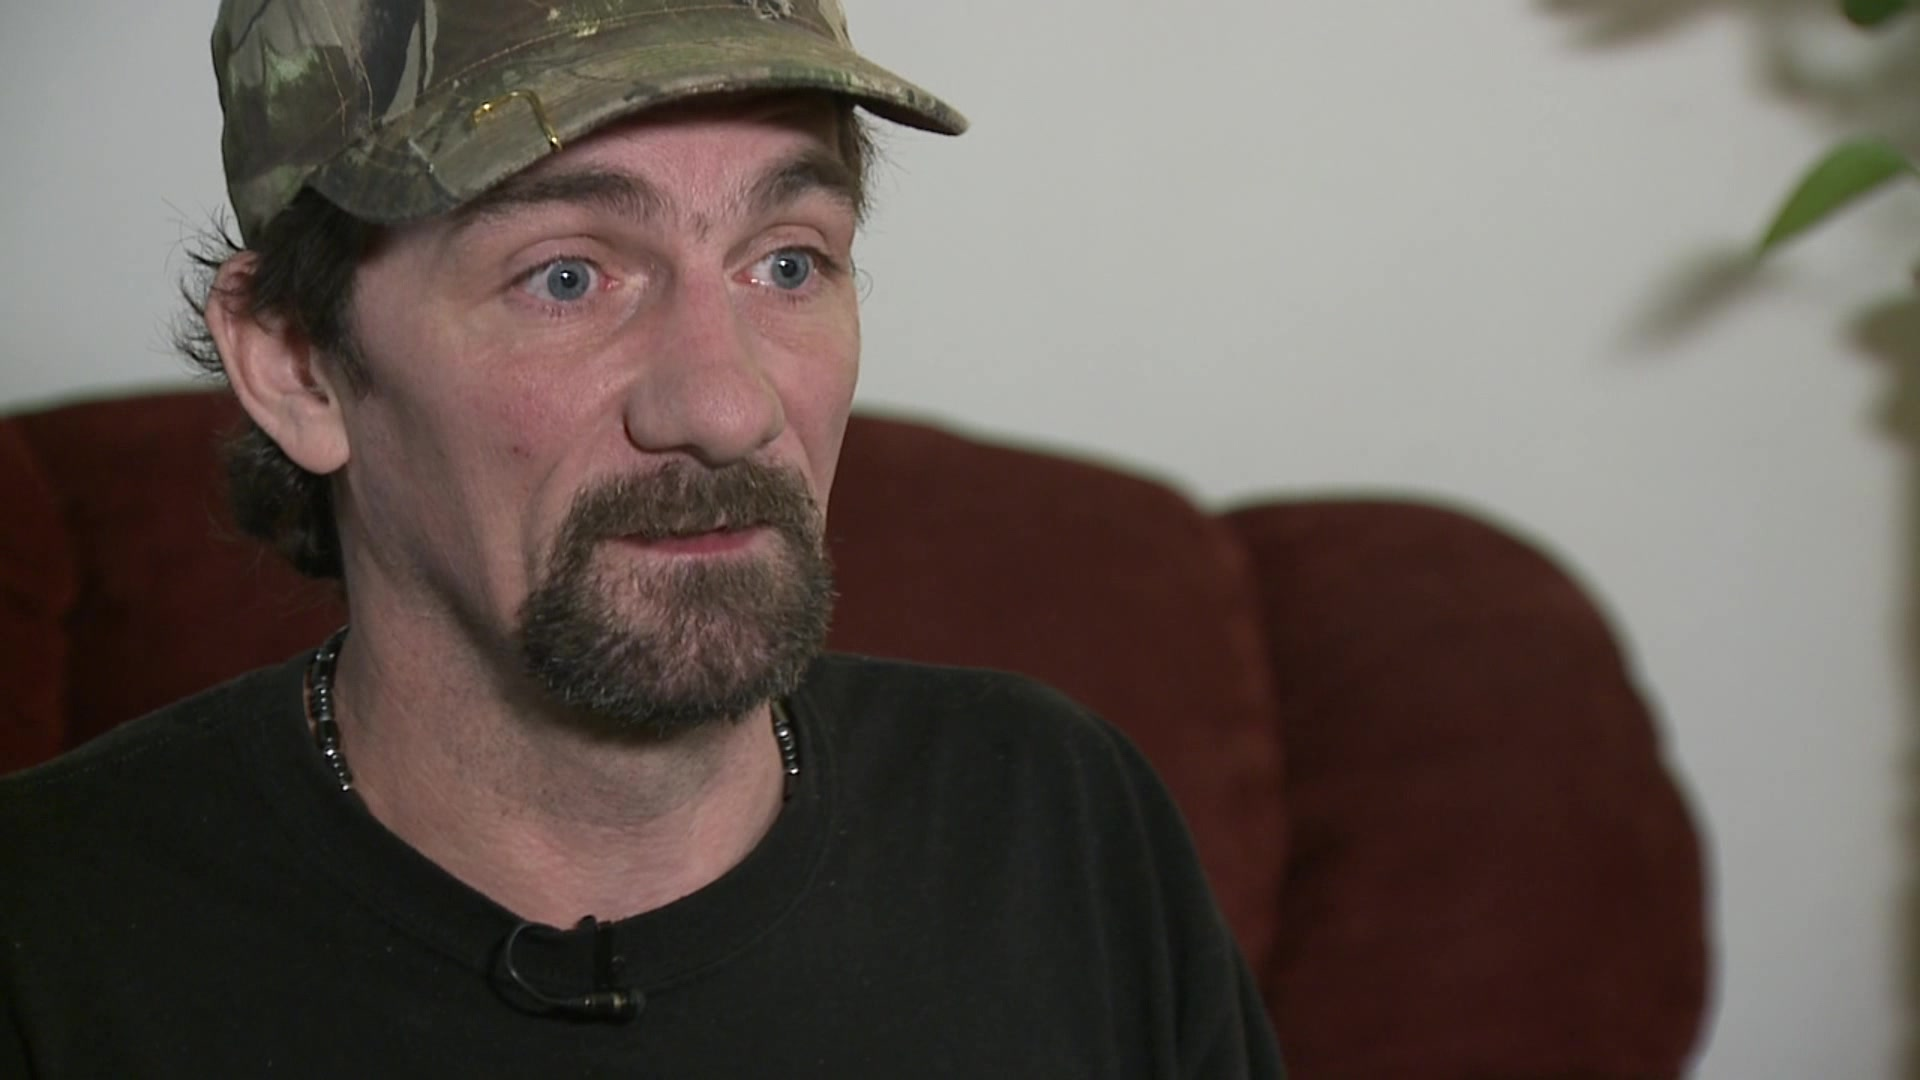 Man Protests Law Requiring Him To Pay Child Support For Another Man's Child